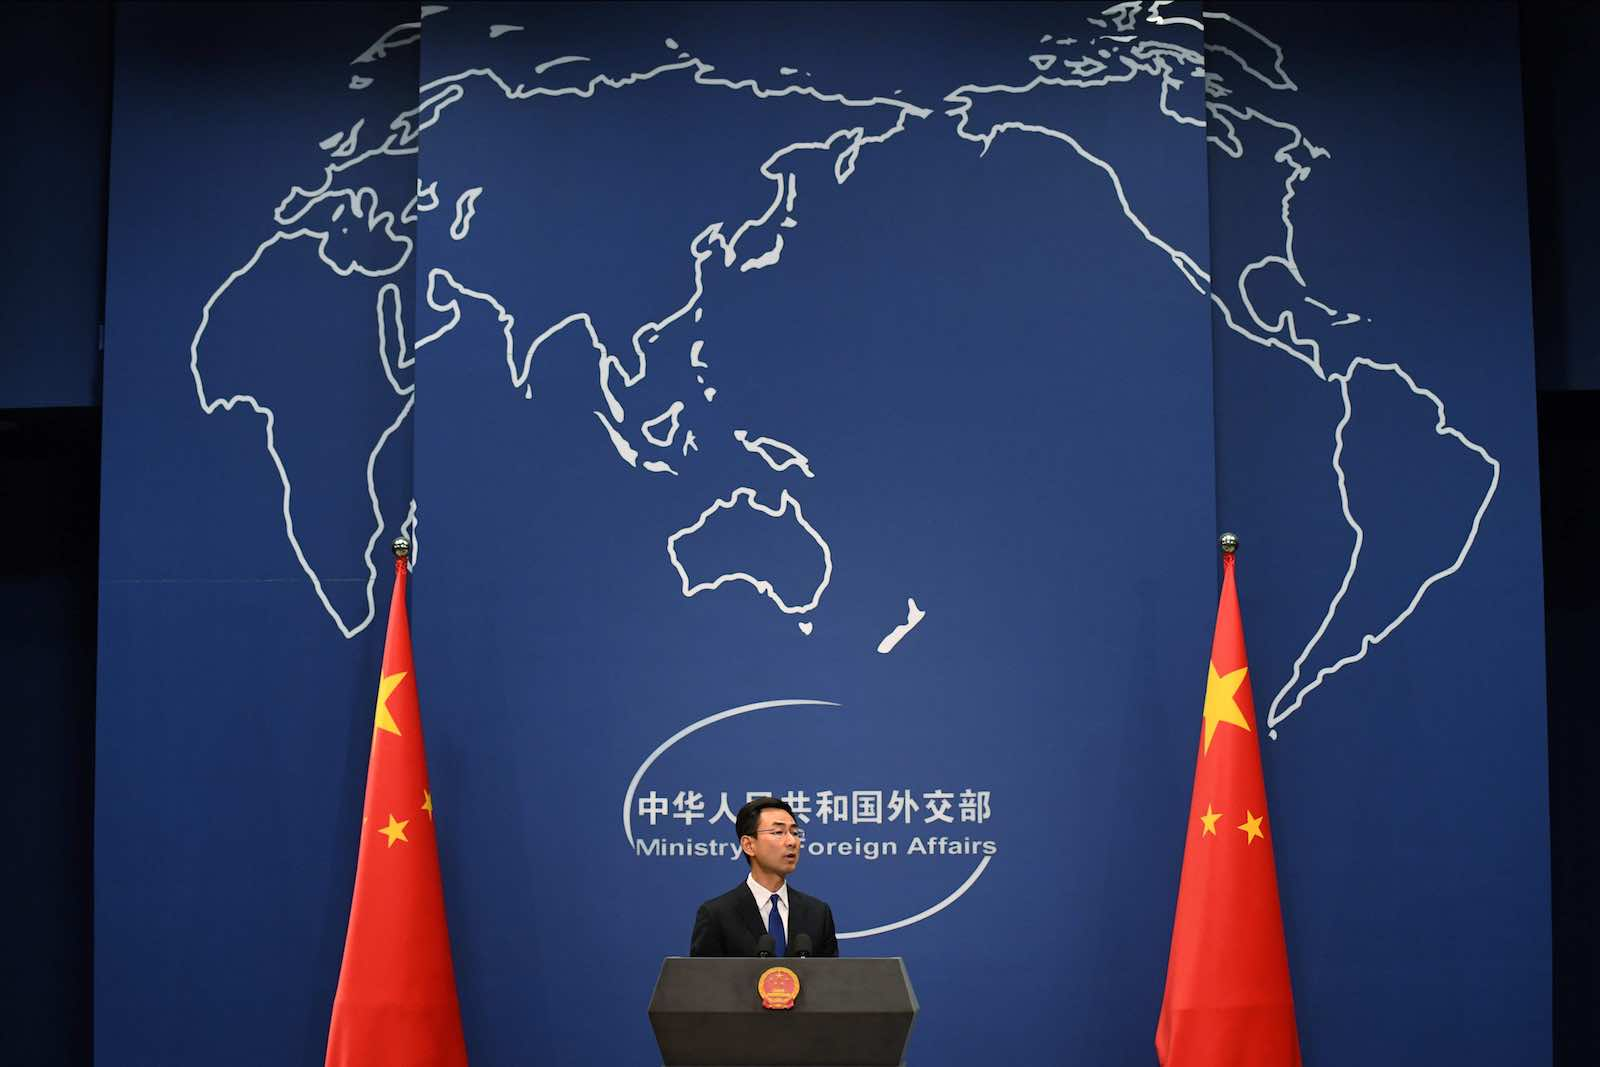 Chinese Foreign Ministry daily press briefing (Greg Barker/AFP via Getty Images)